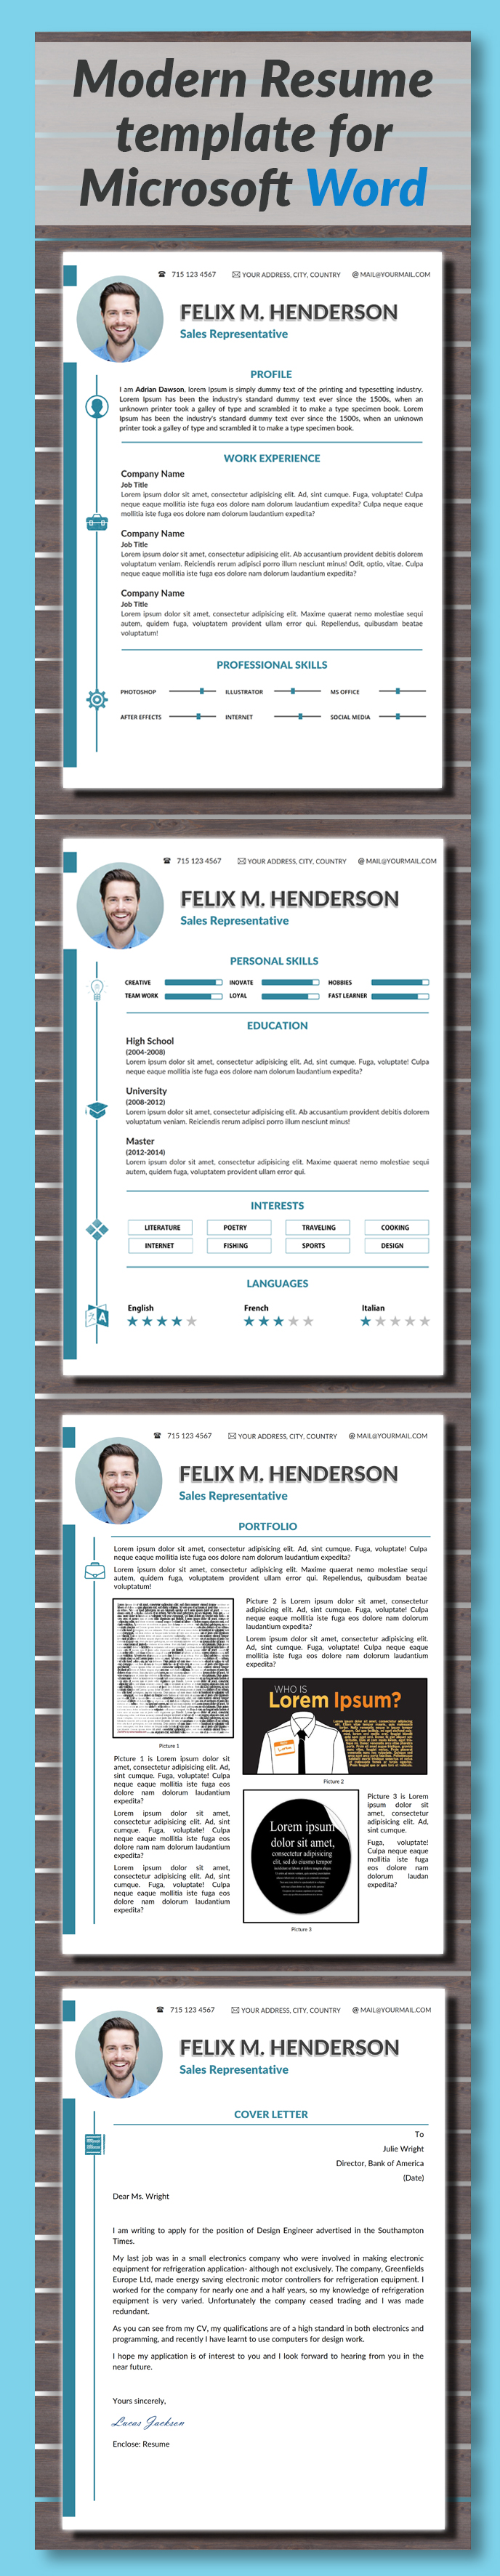 modern resume template cover letter portfolio business